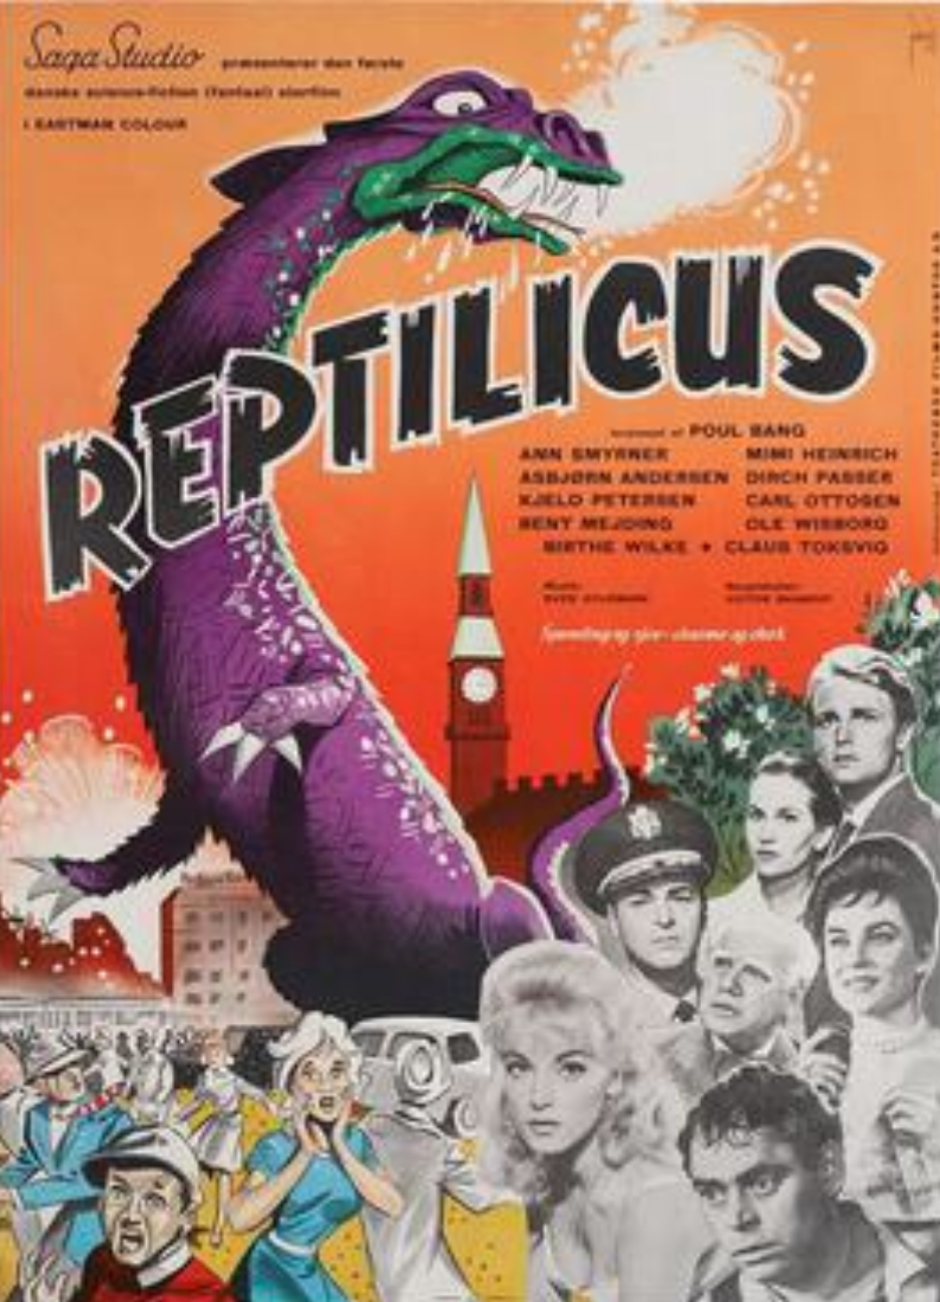 1961 Danish theatrical poster of Reptilicus